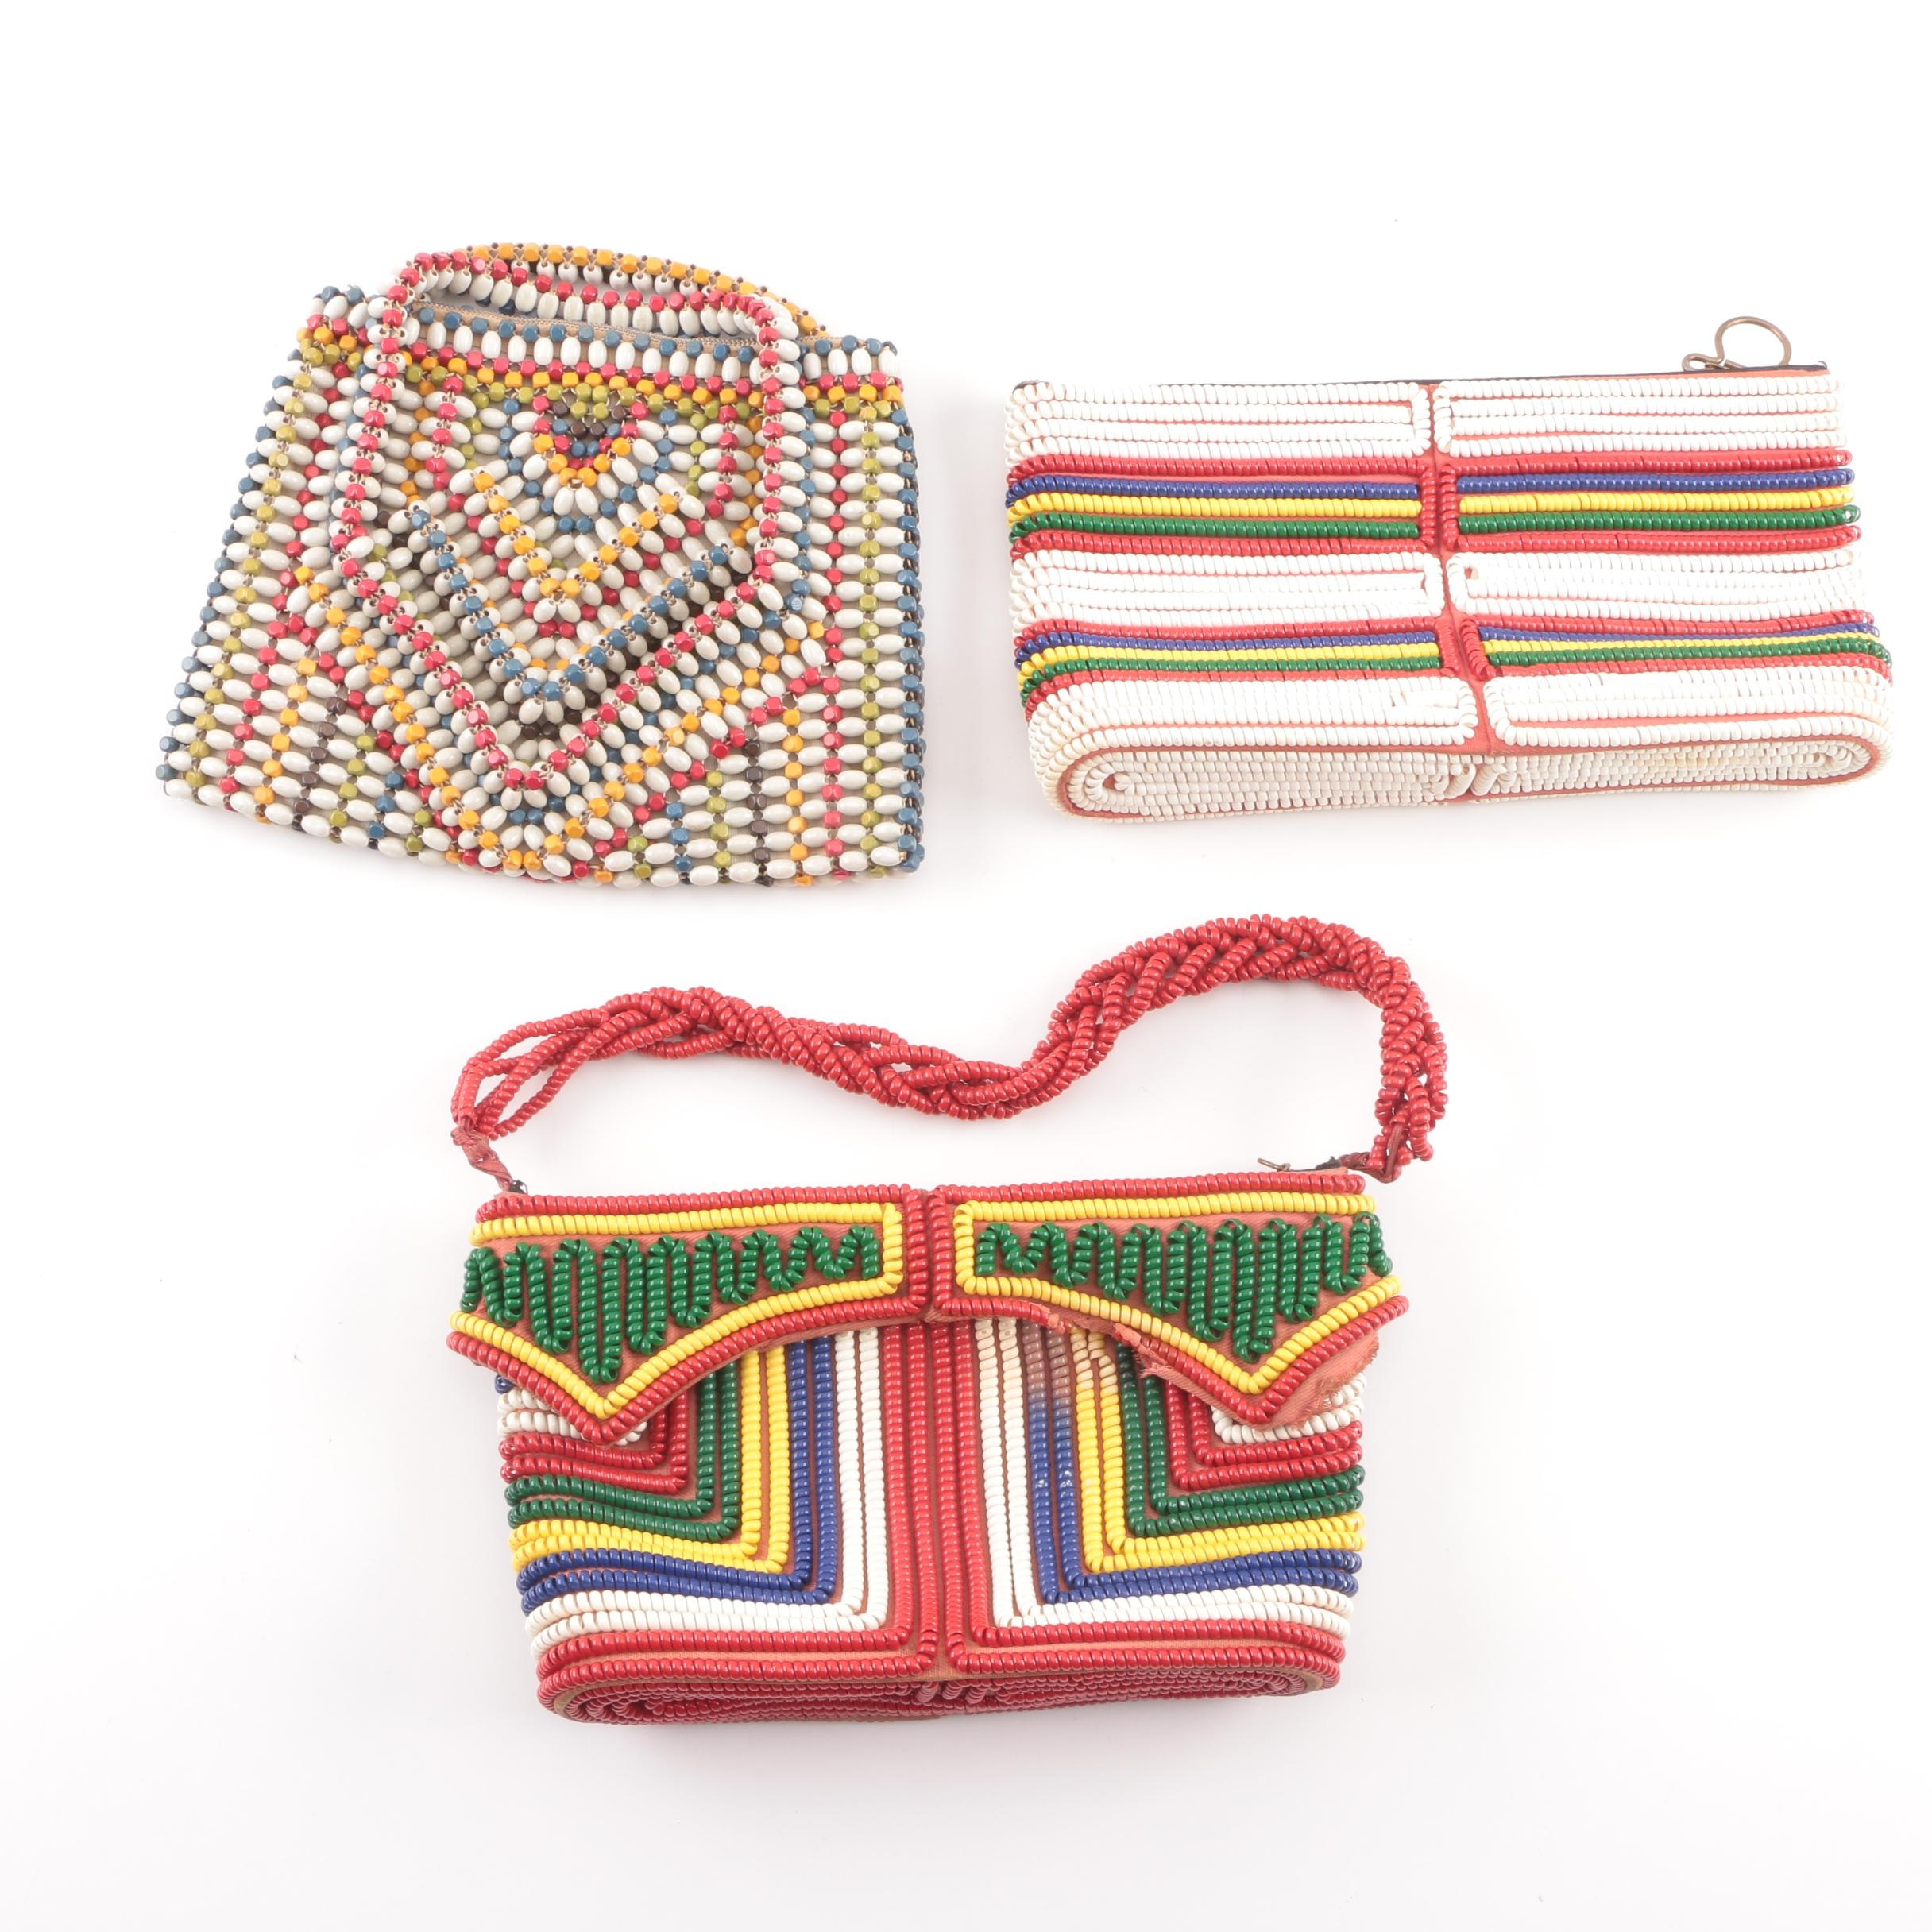 Vintage Suzanne Czechoslovakia Beaded and Telephone Cord Handbags